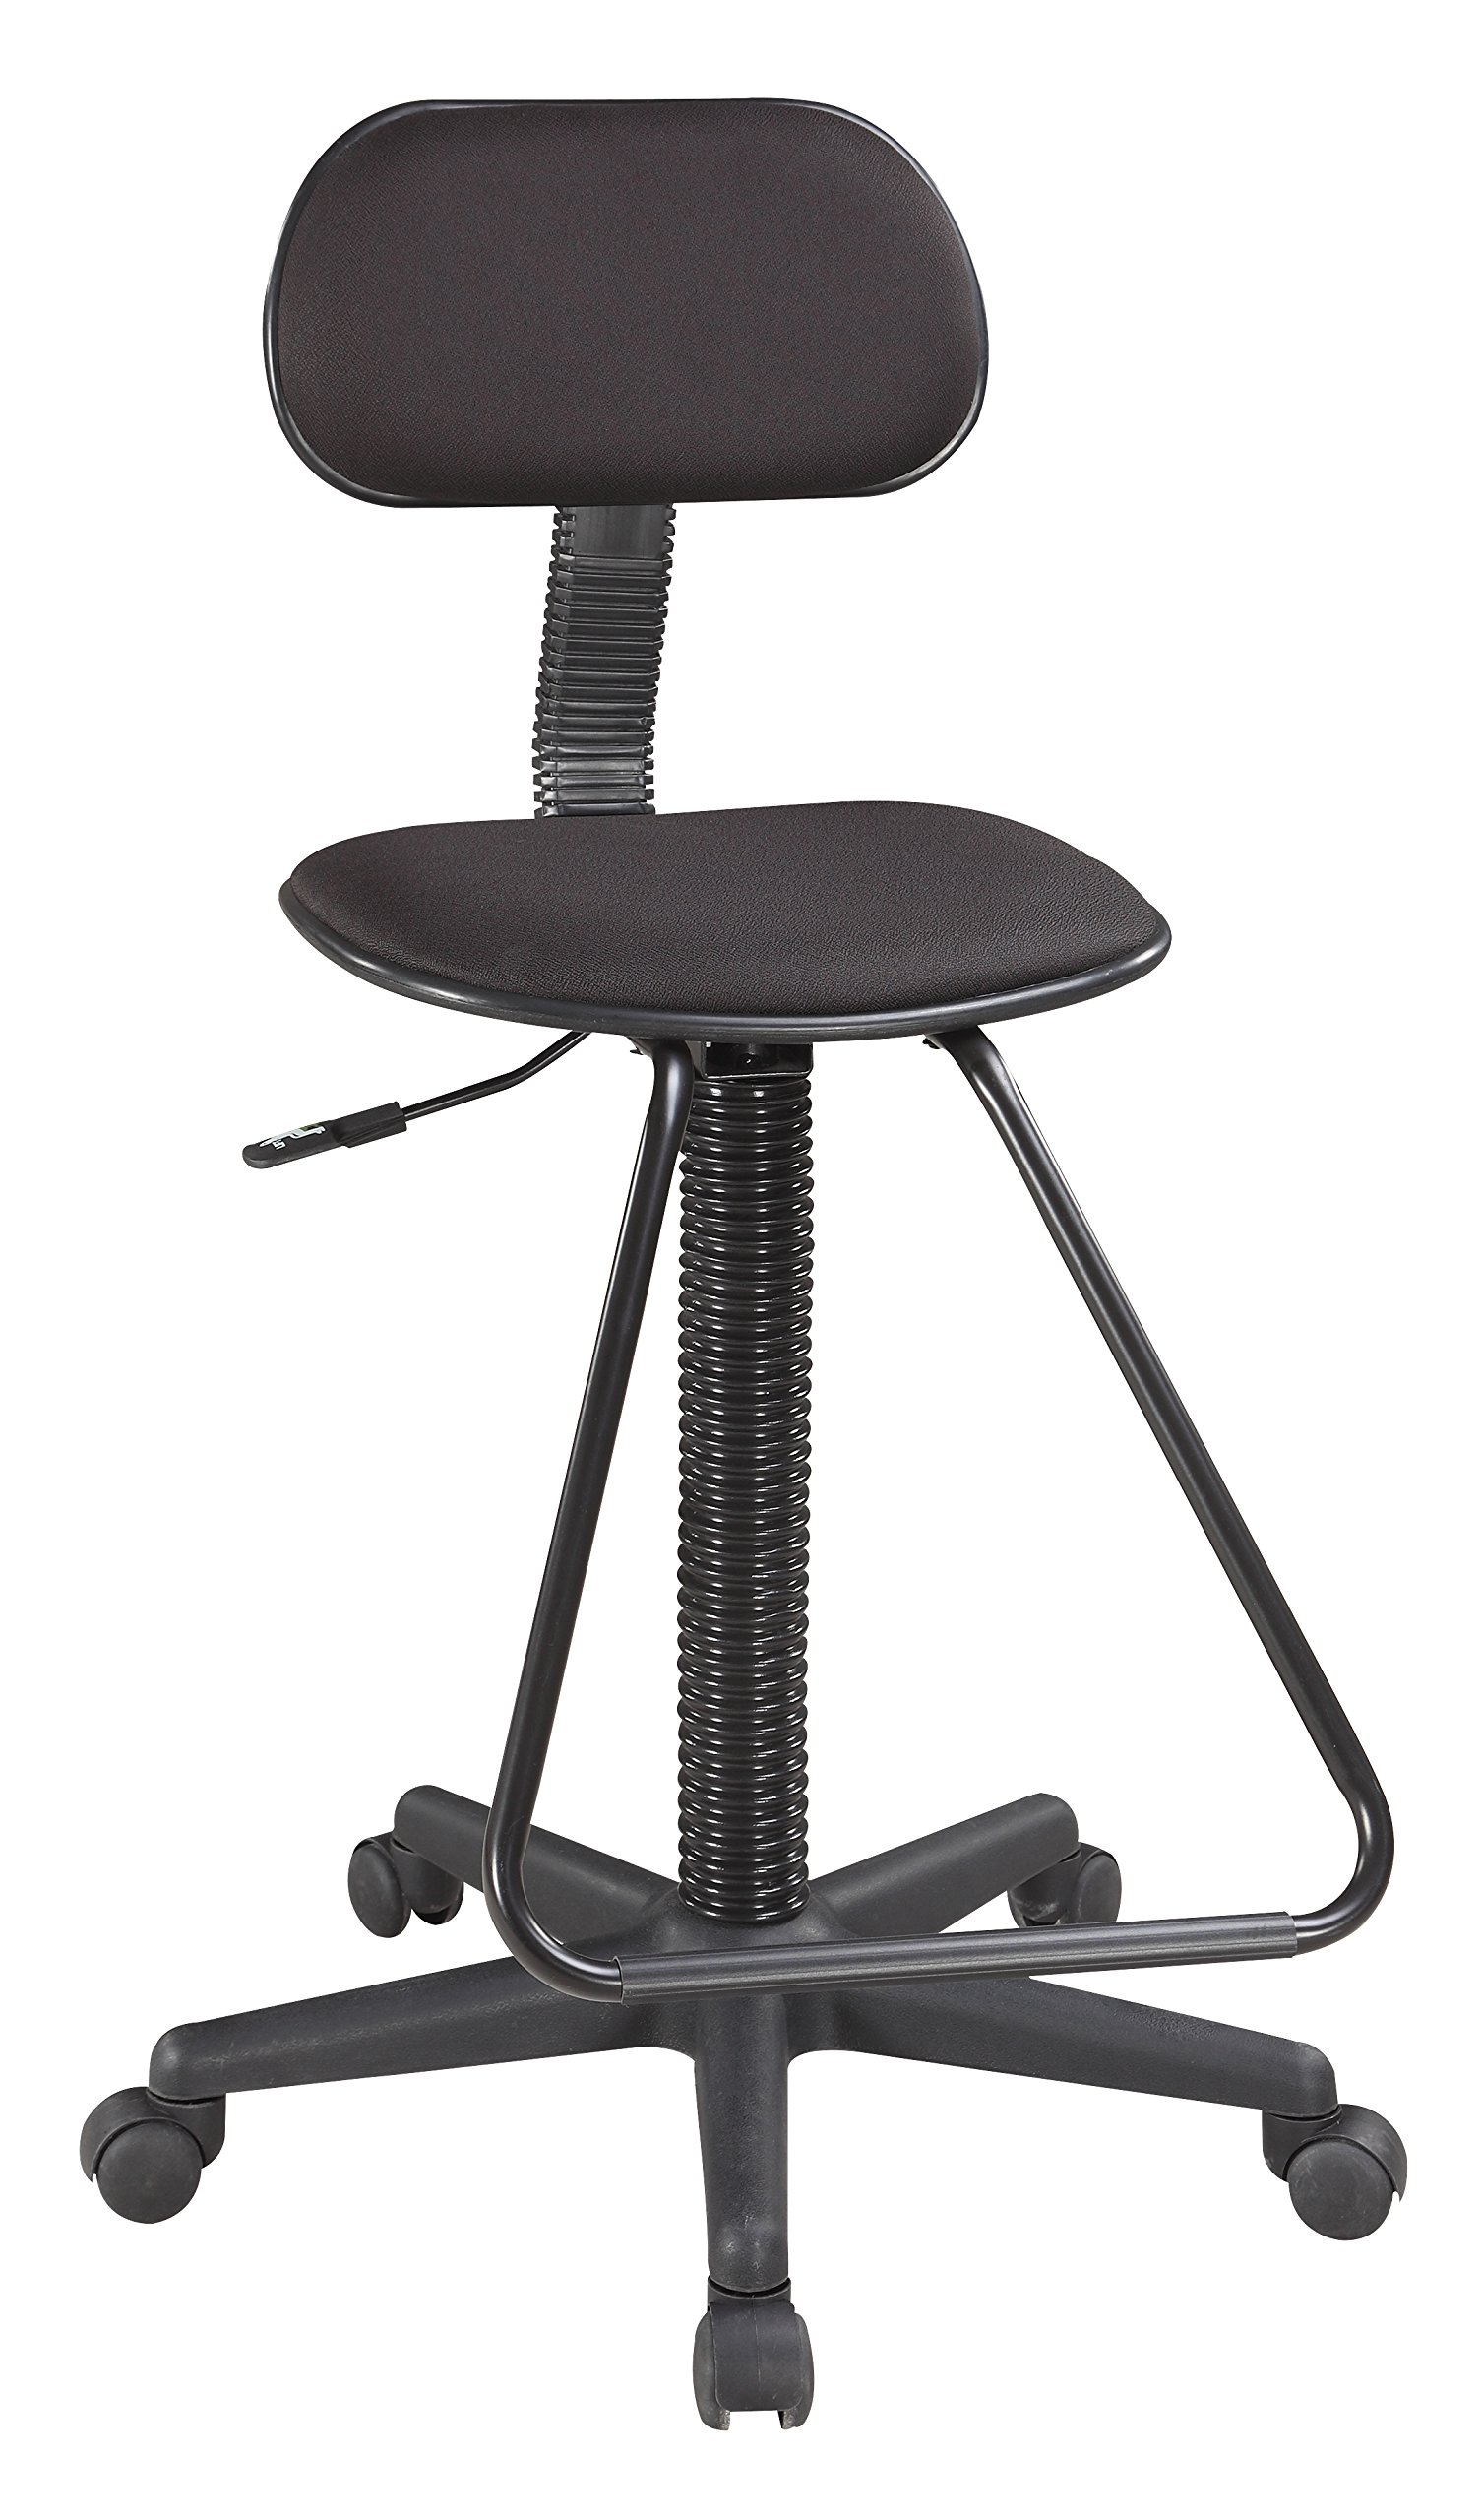 Alvin CH213 Drafting Height Economy Chair